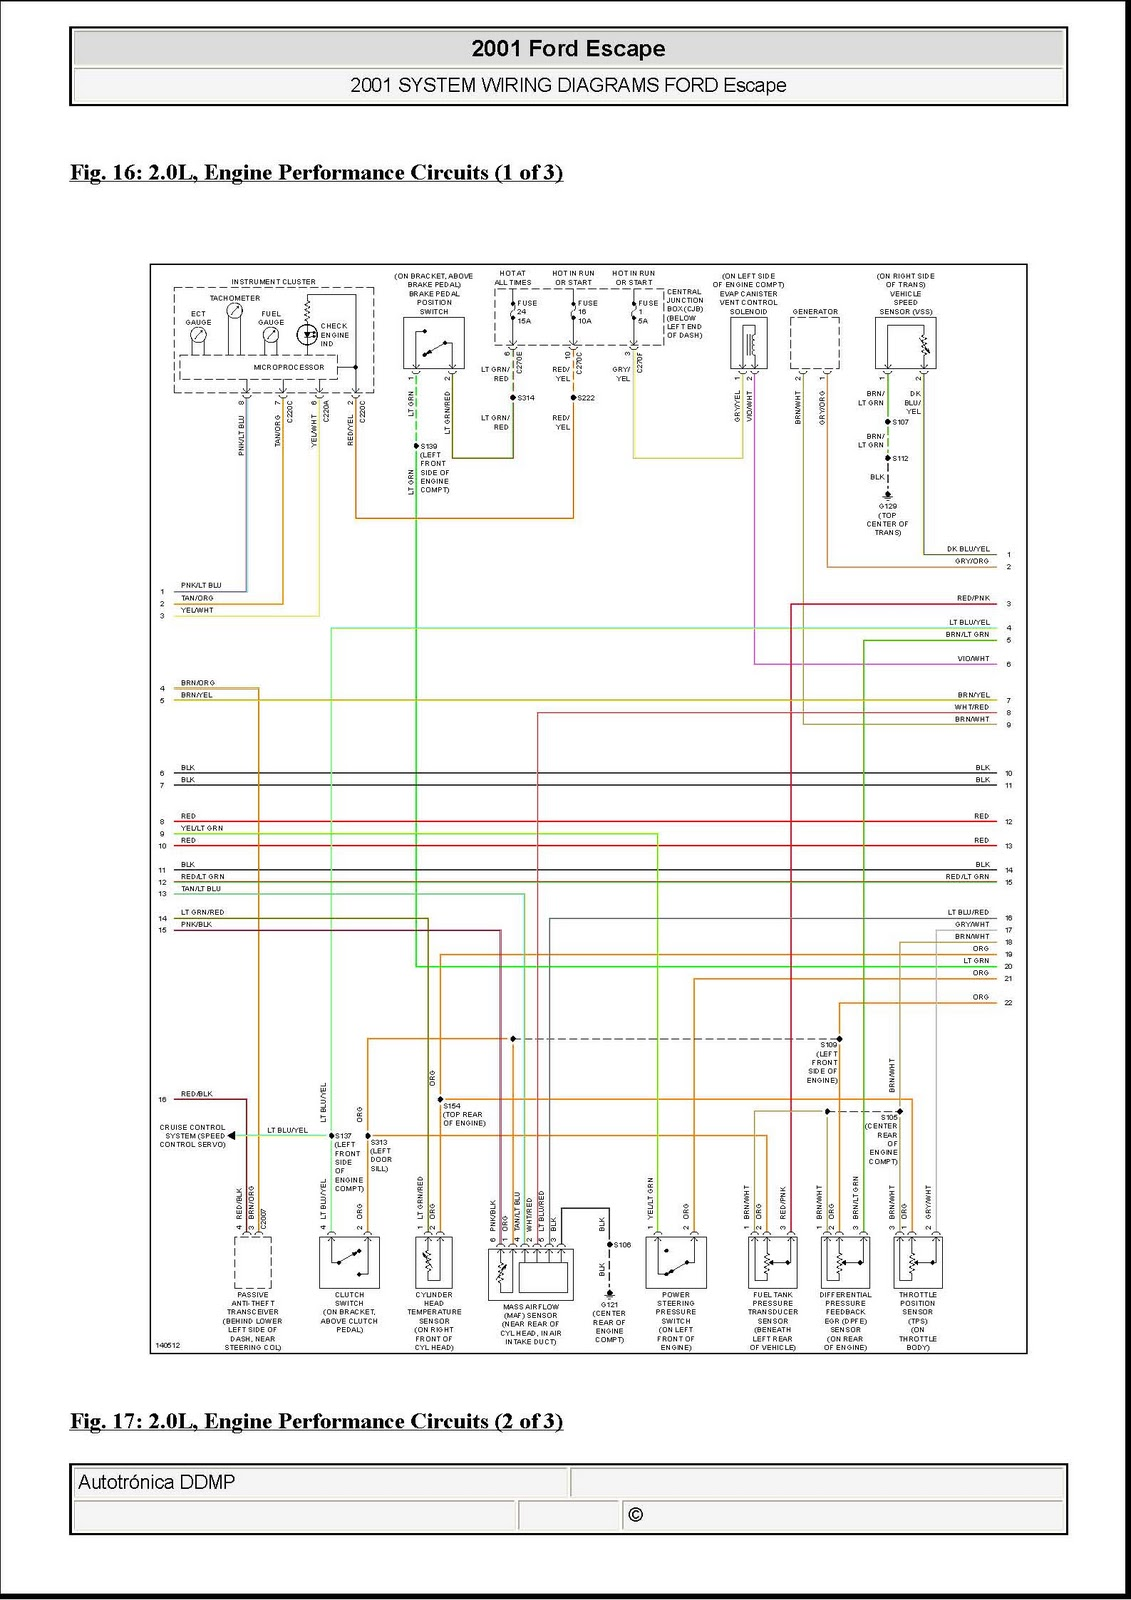 2003 civic hybrid wiring diagram toyota camry 2003 engine diagram 2003 honda civic hybrid ... #6